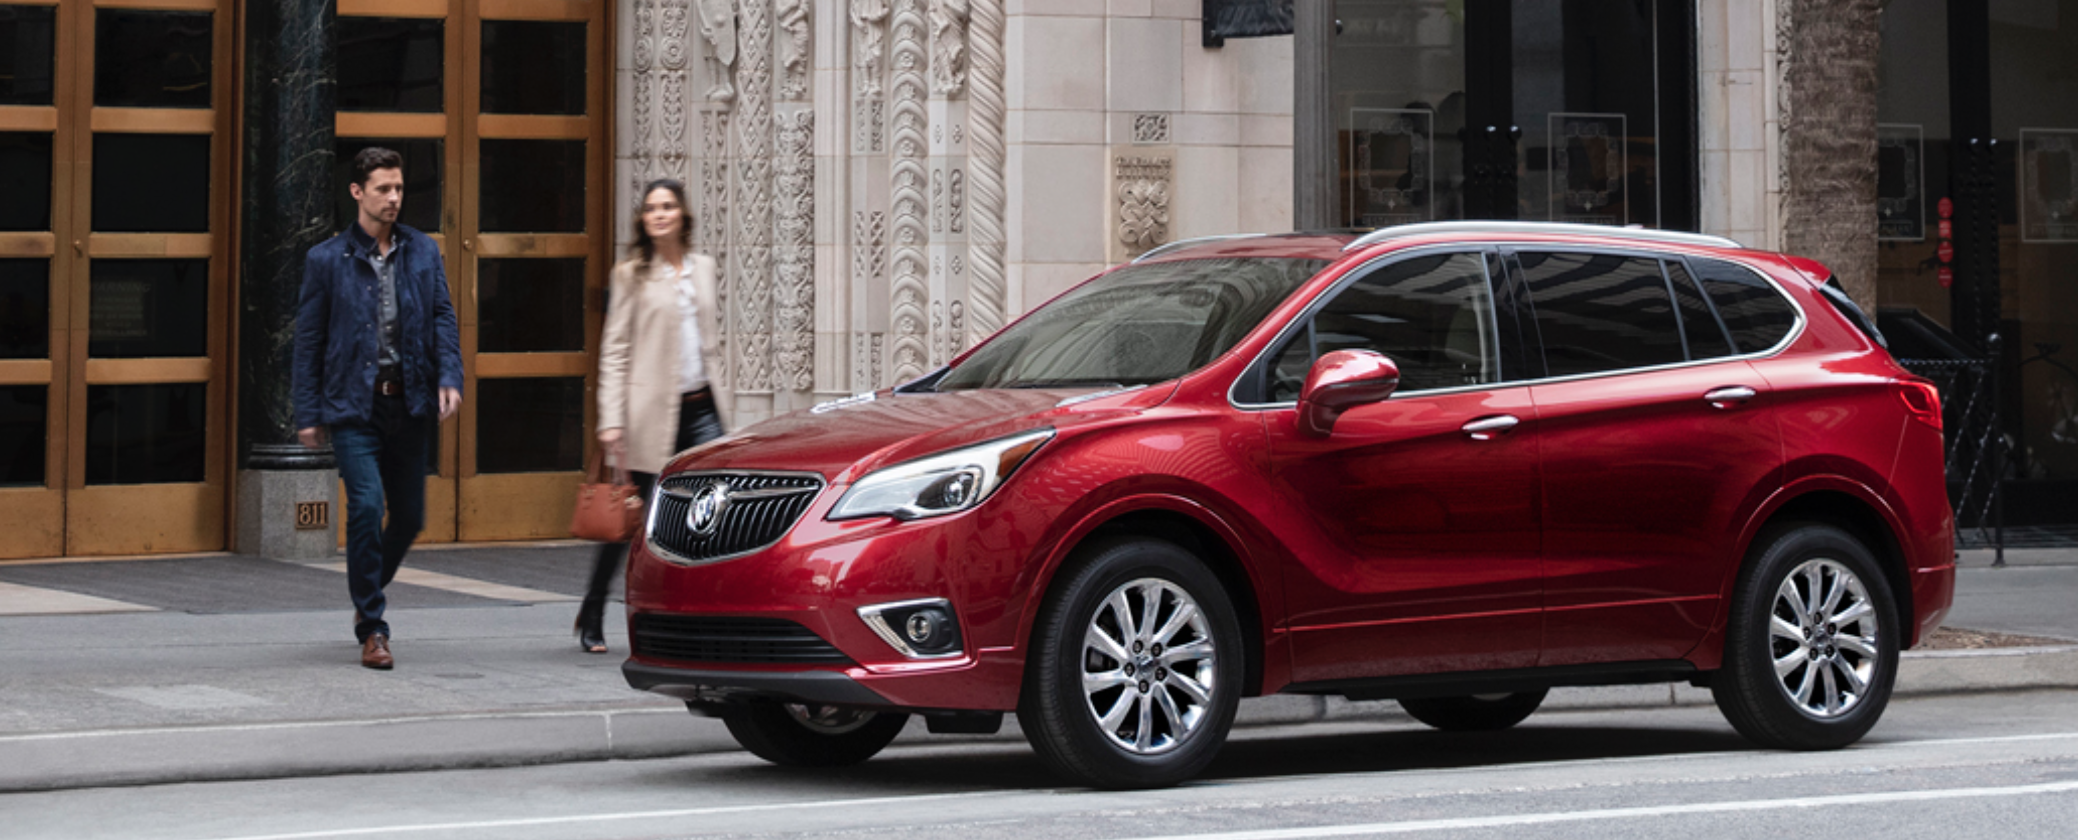 2020 Buick Envision In Highland In Buick Envision Safest Suv Buick